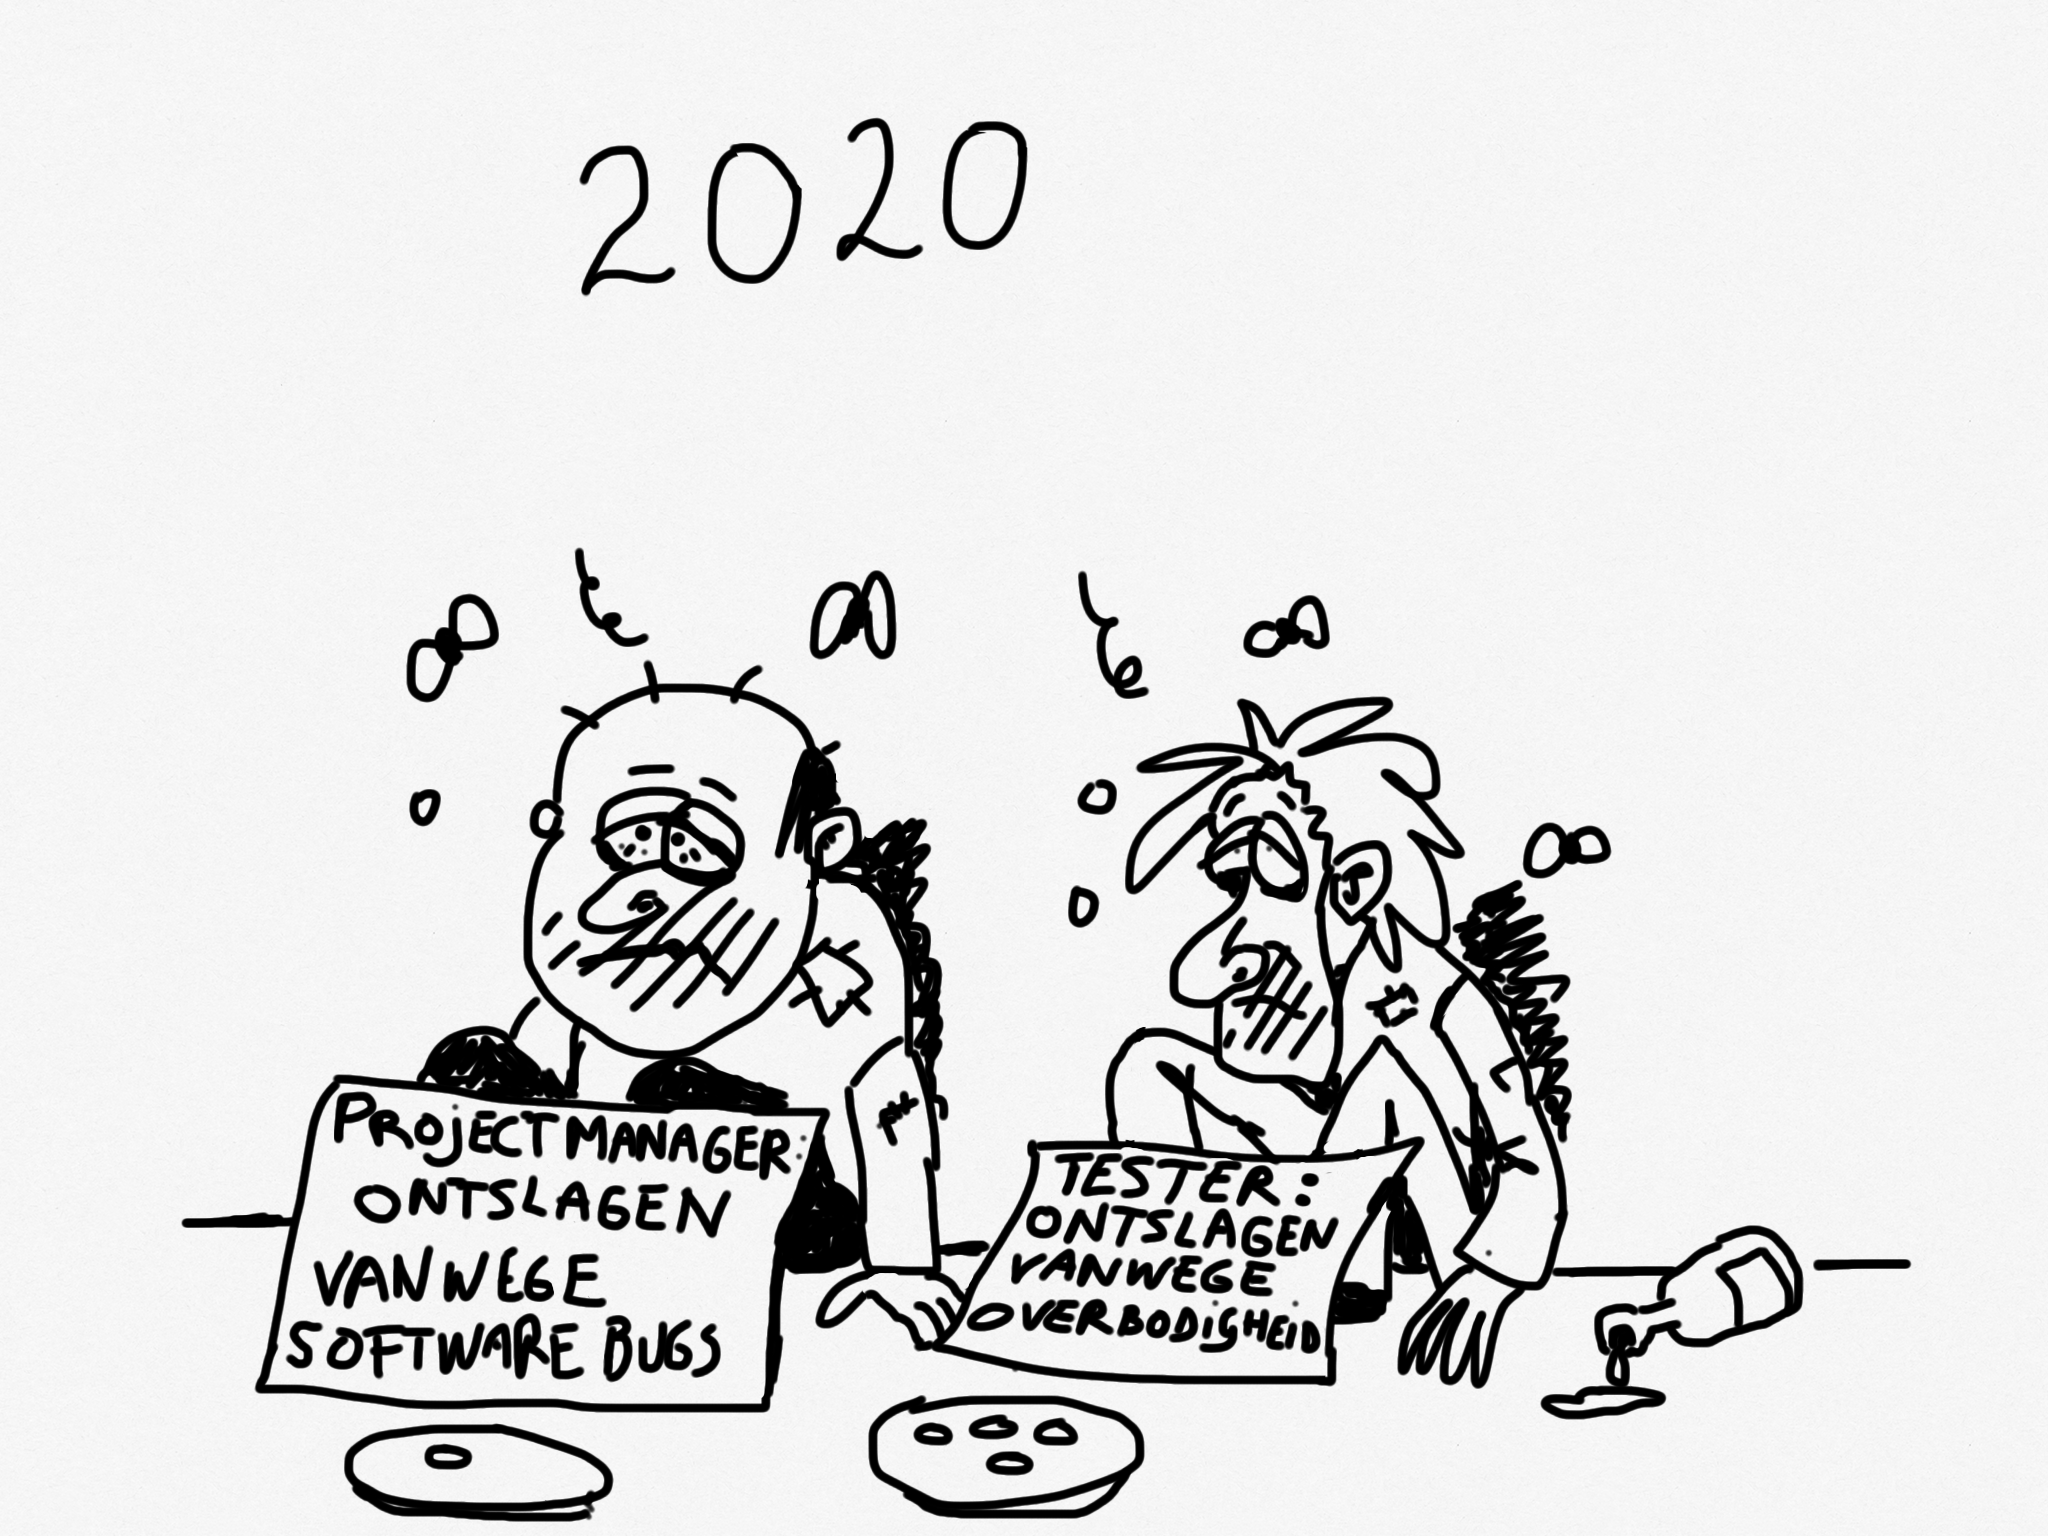 Cartoon: Testers overbodig in 2020!